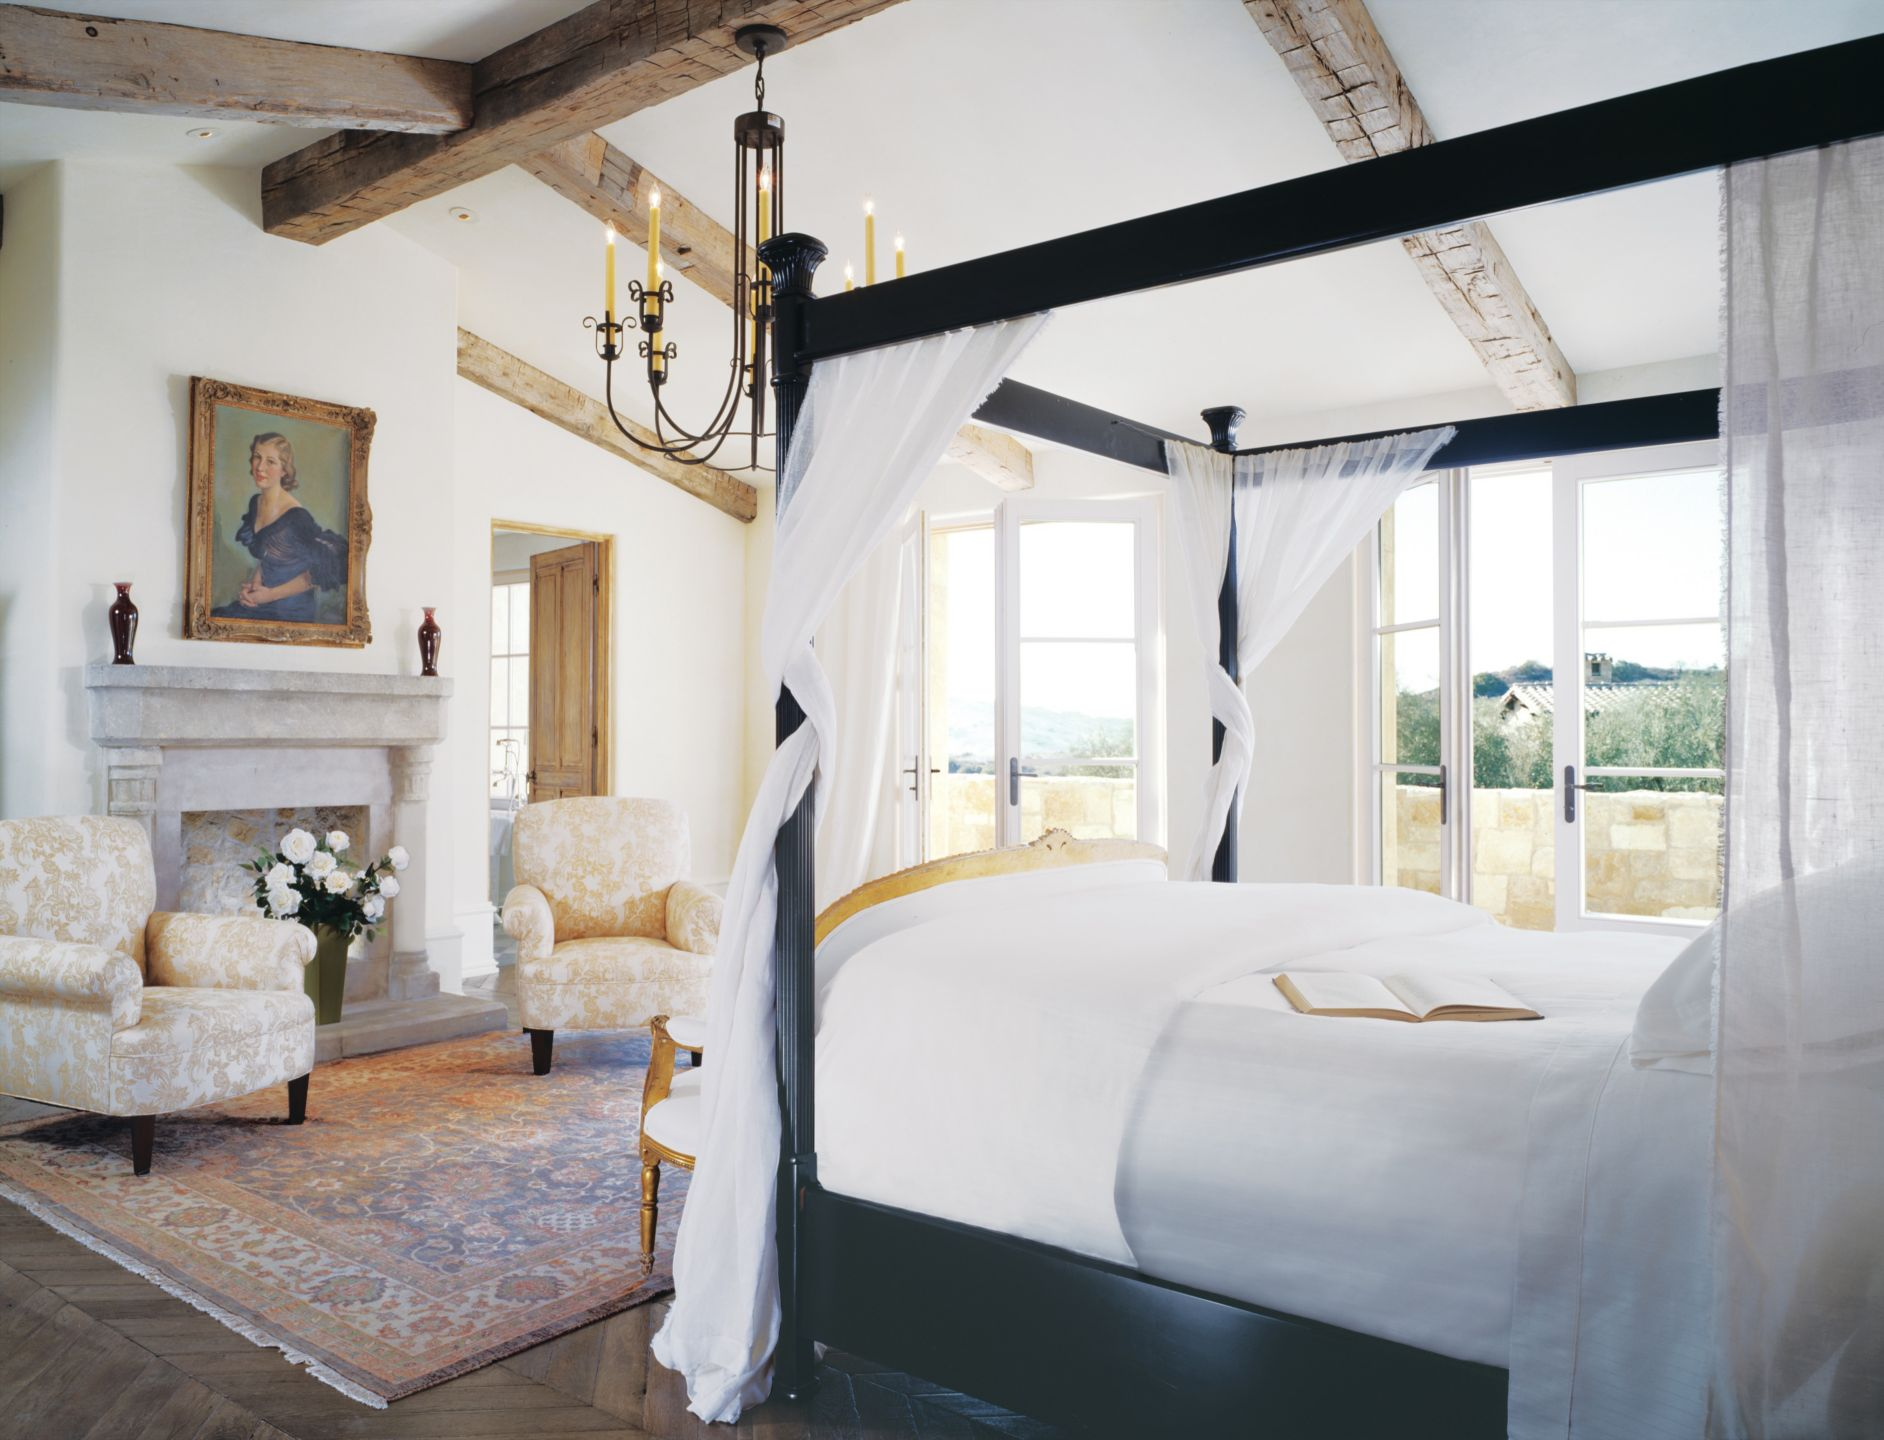 Display An Artwork Above the Bedroom Mantel